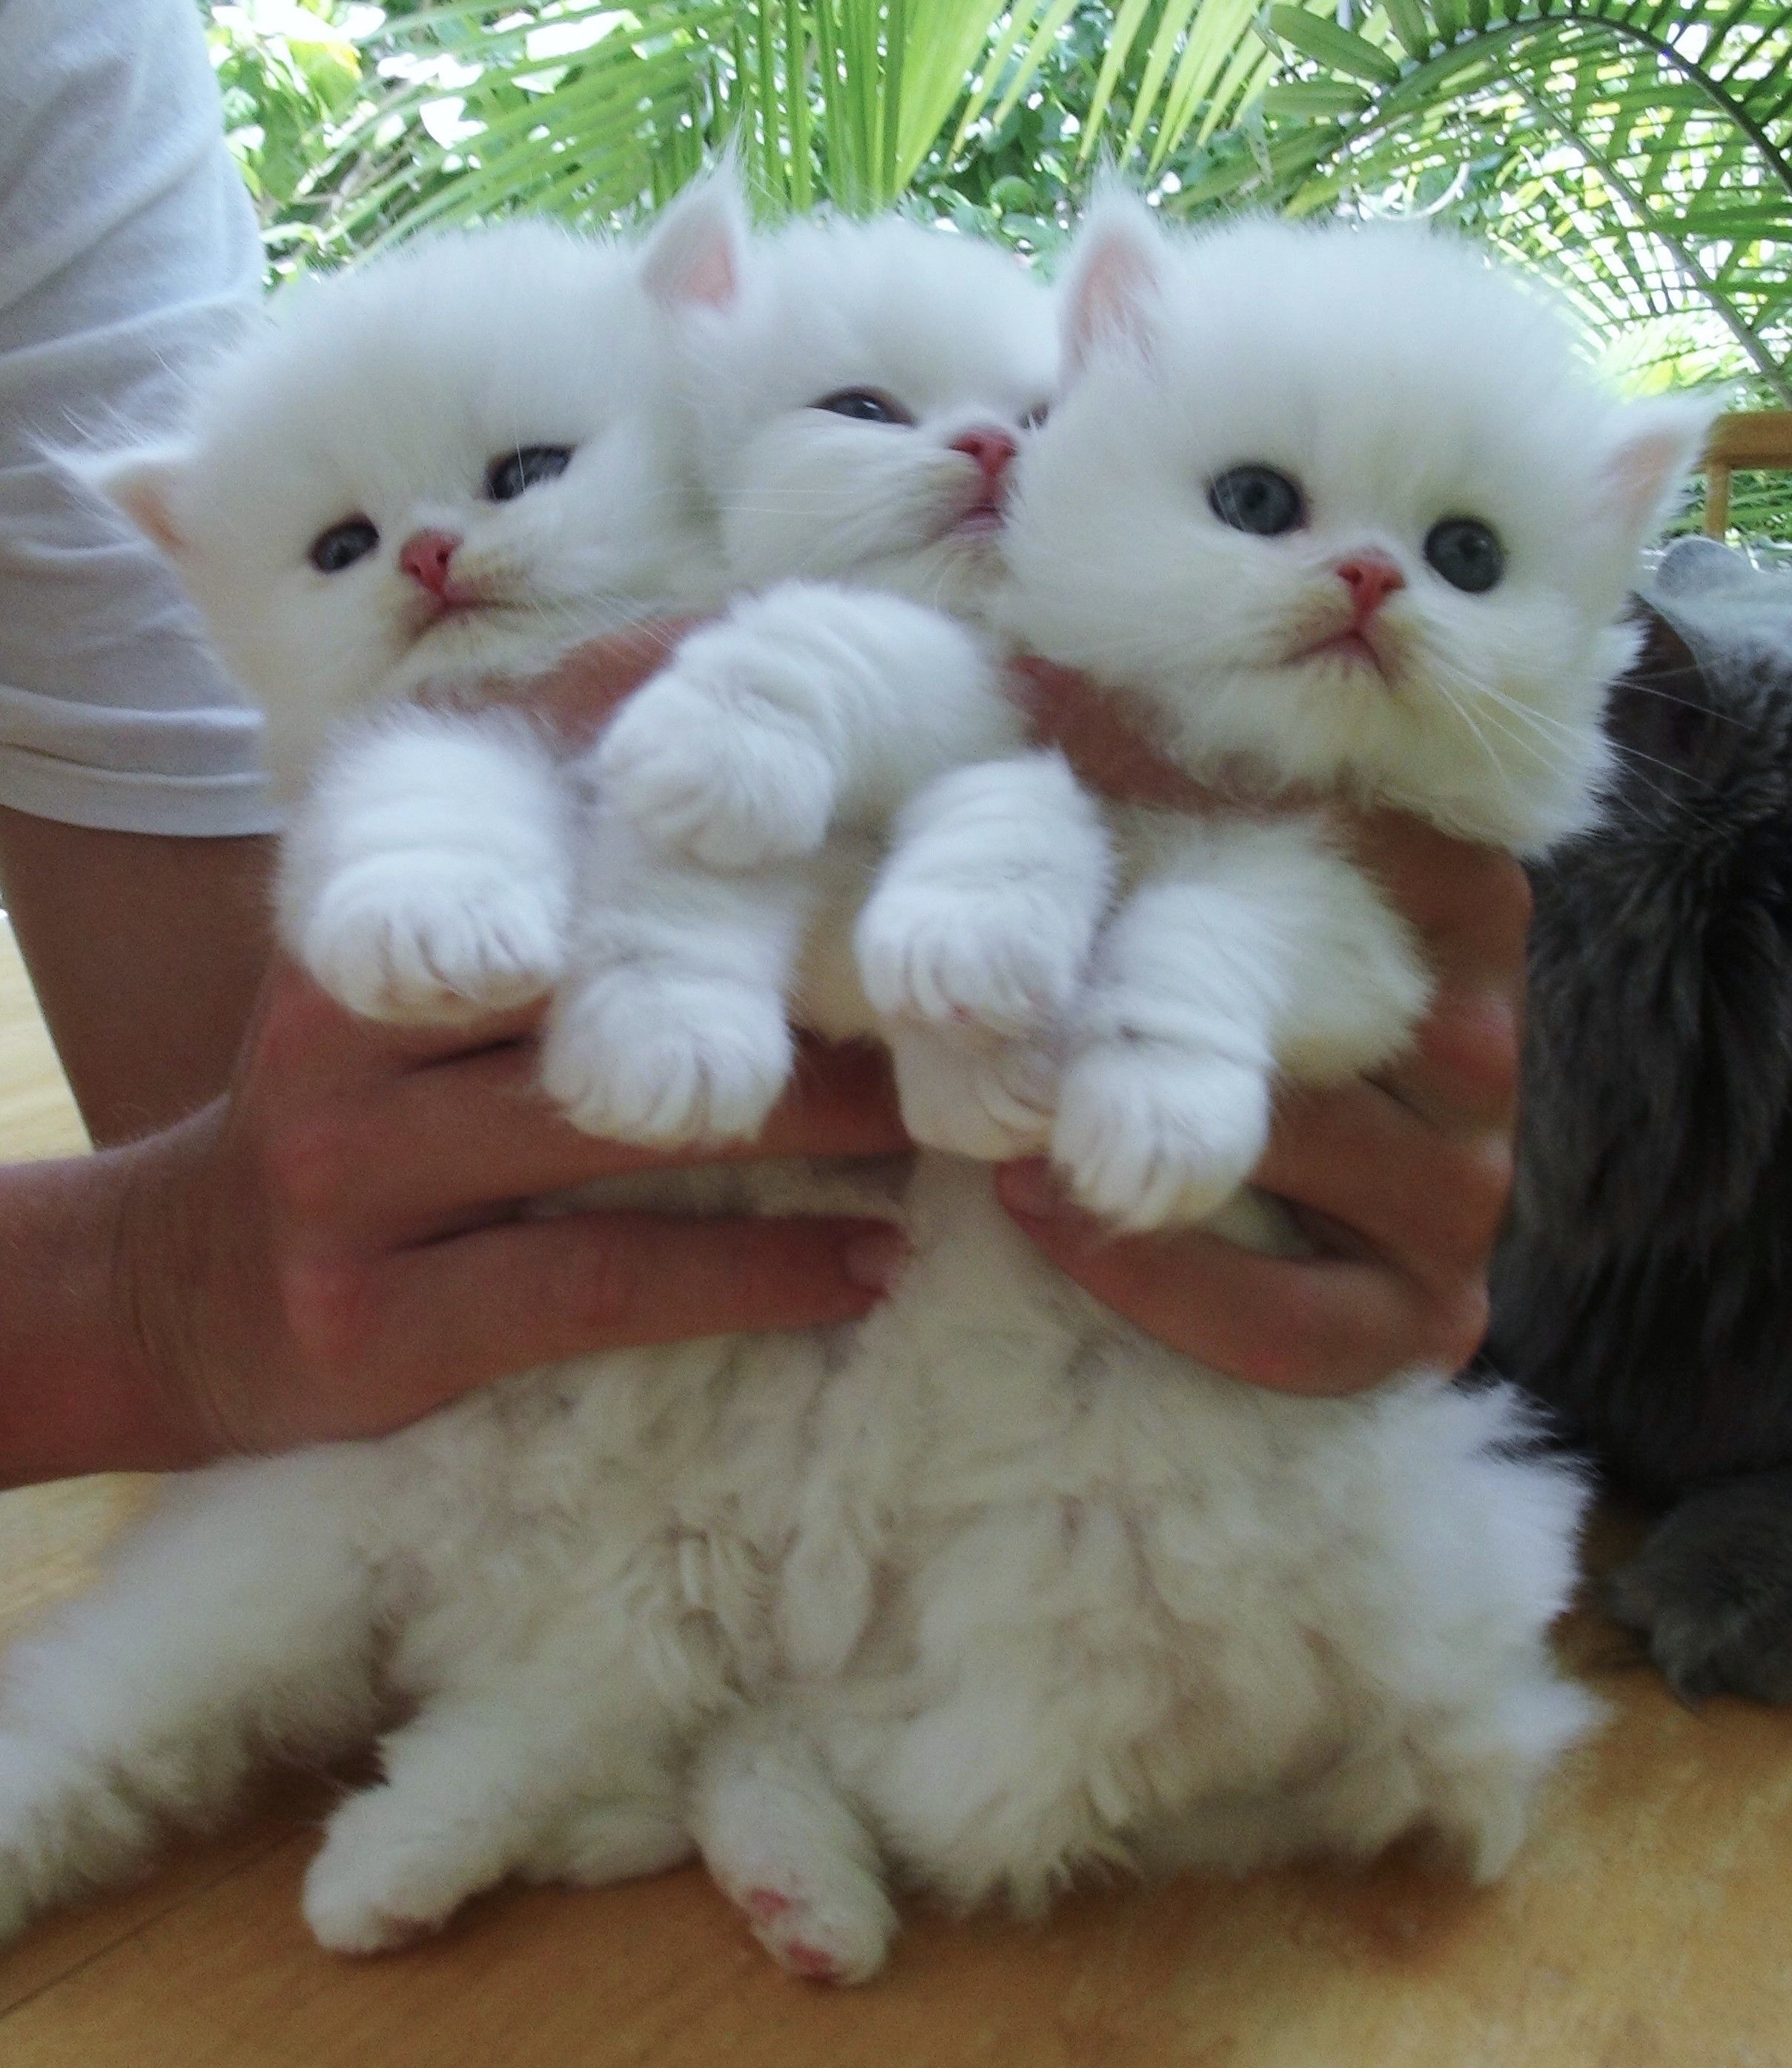 August 2016 Last Kittens For This Time Scottish Fold Short Hair Cream Color Point Boy And Girl 3 Months 9 Kittens Cutest Cute Cats Cute Baby Animals